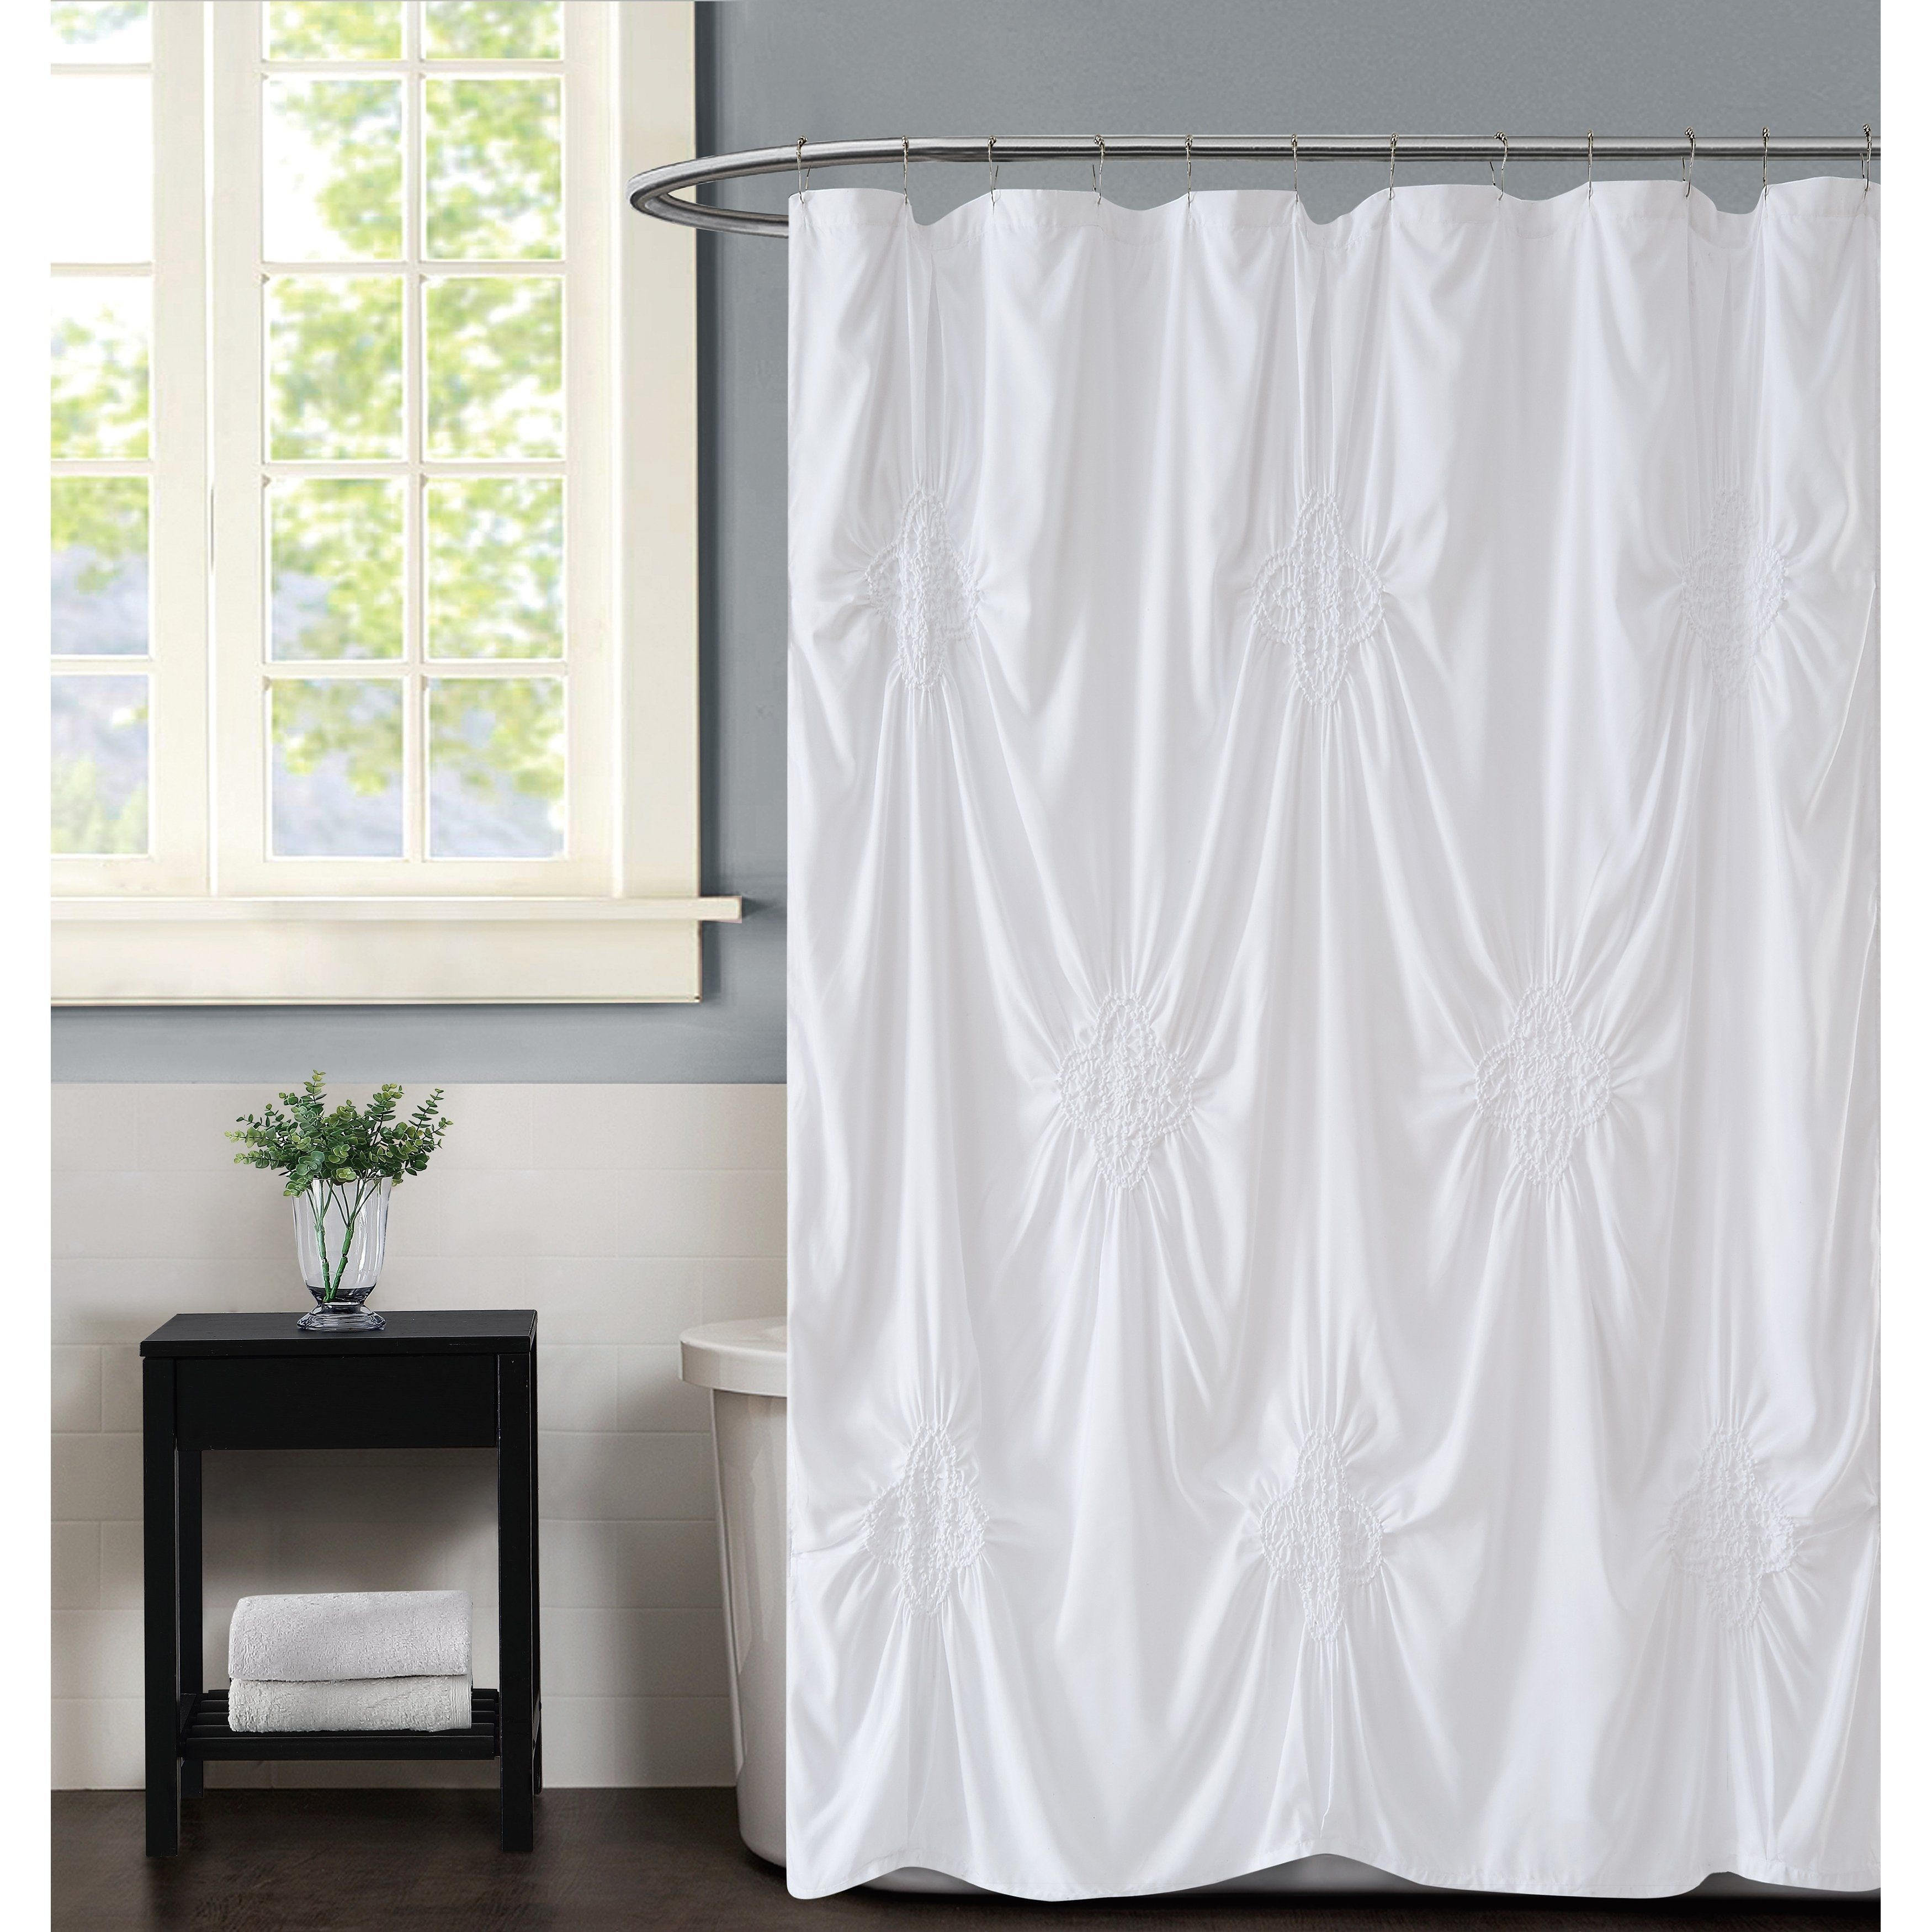 Christian Siriano Georgia Rouched 72 X 72 Shower Curtain